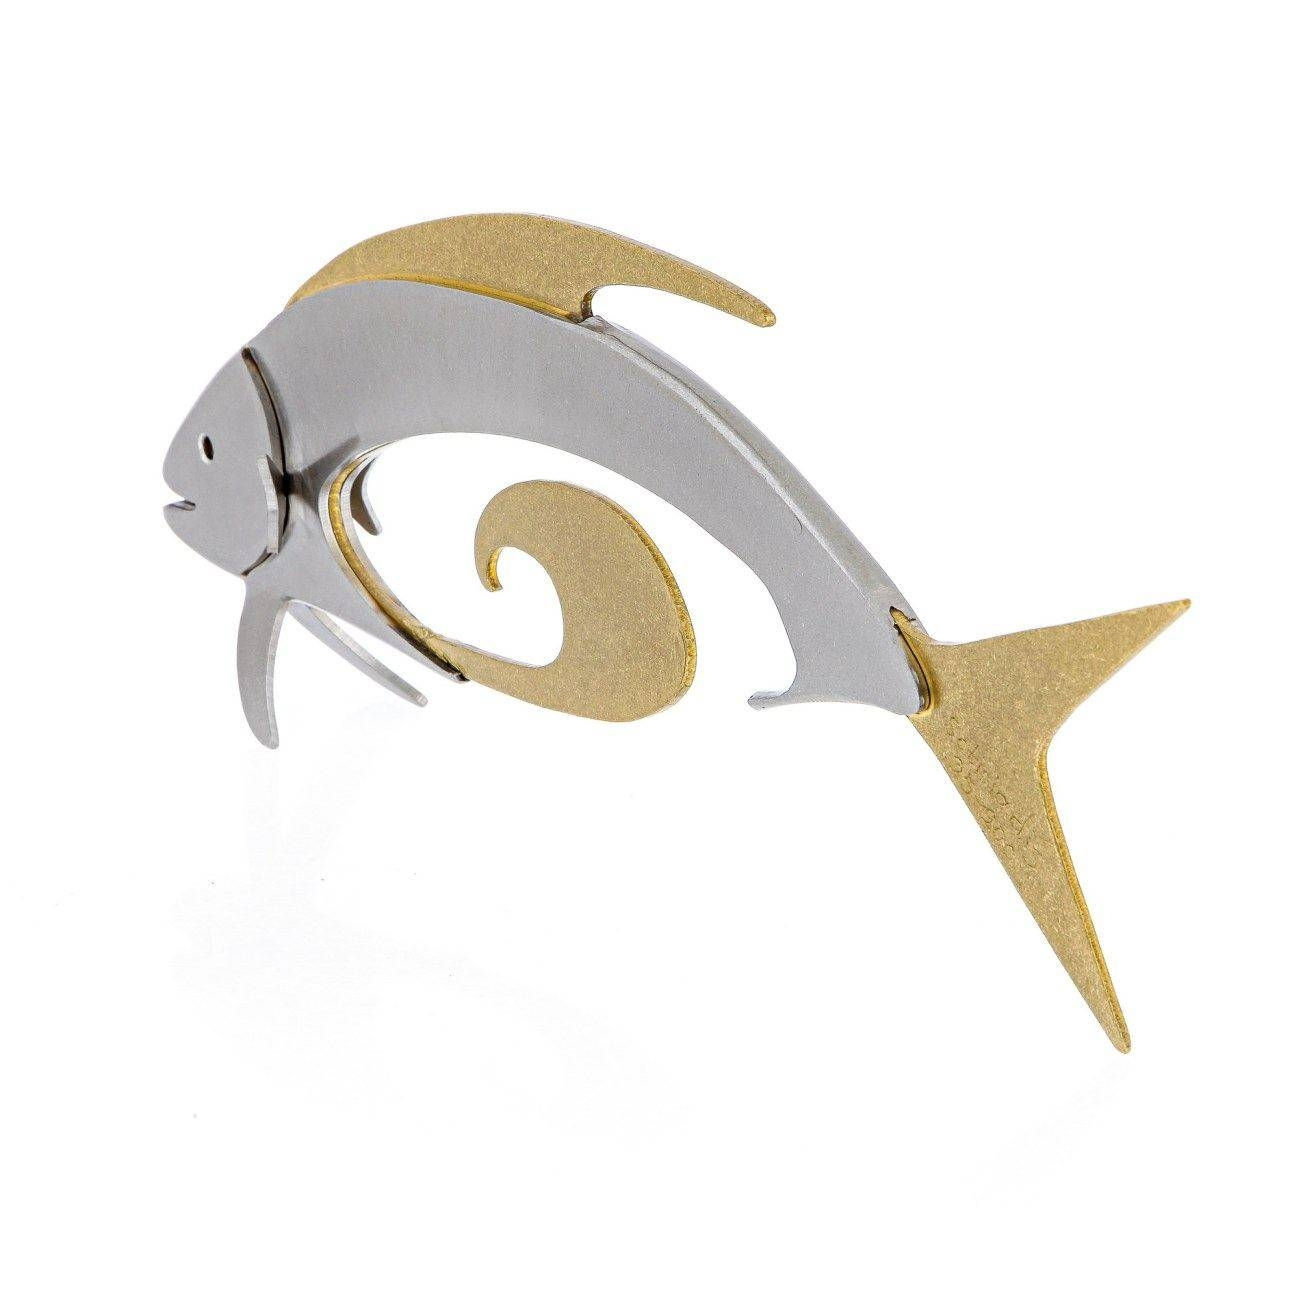 Modern Stainless Steel & Bronze Metal Fish Sea Animal Sculpture For 2018 Stainless Steel Fish Wall Art (View 11 of 17)